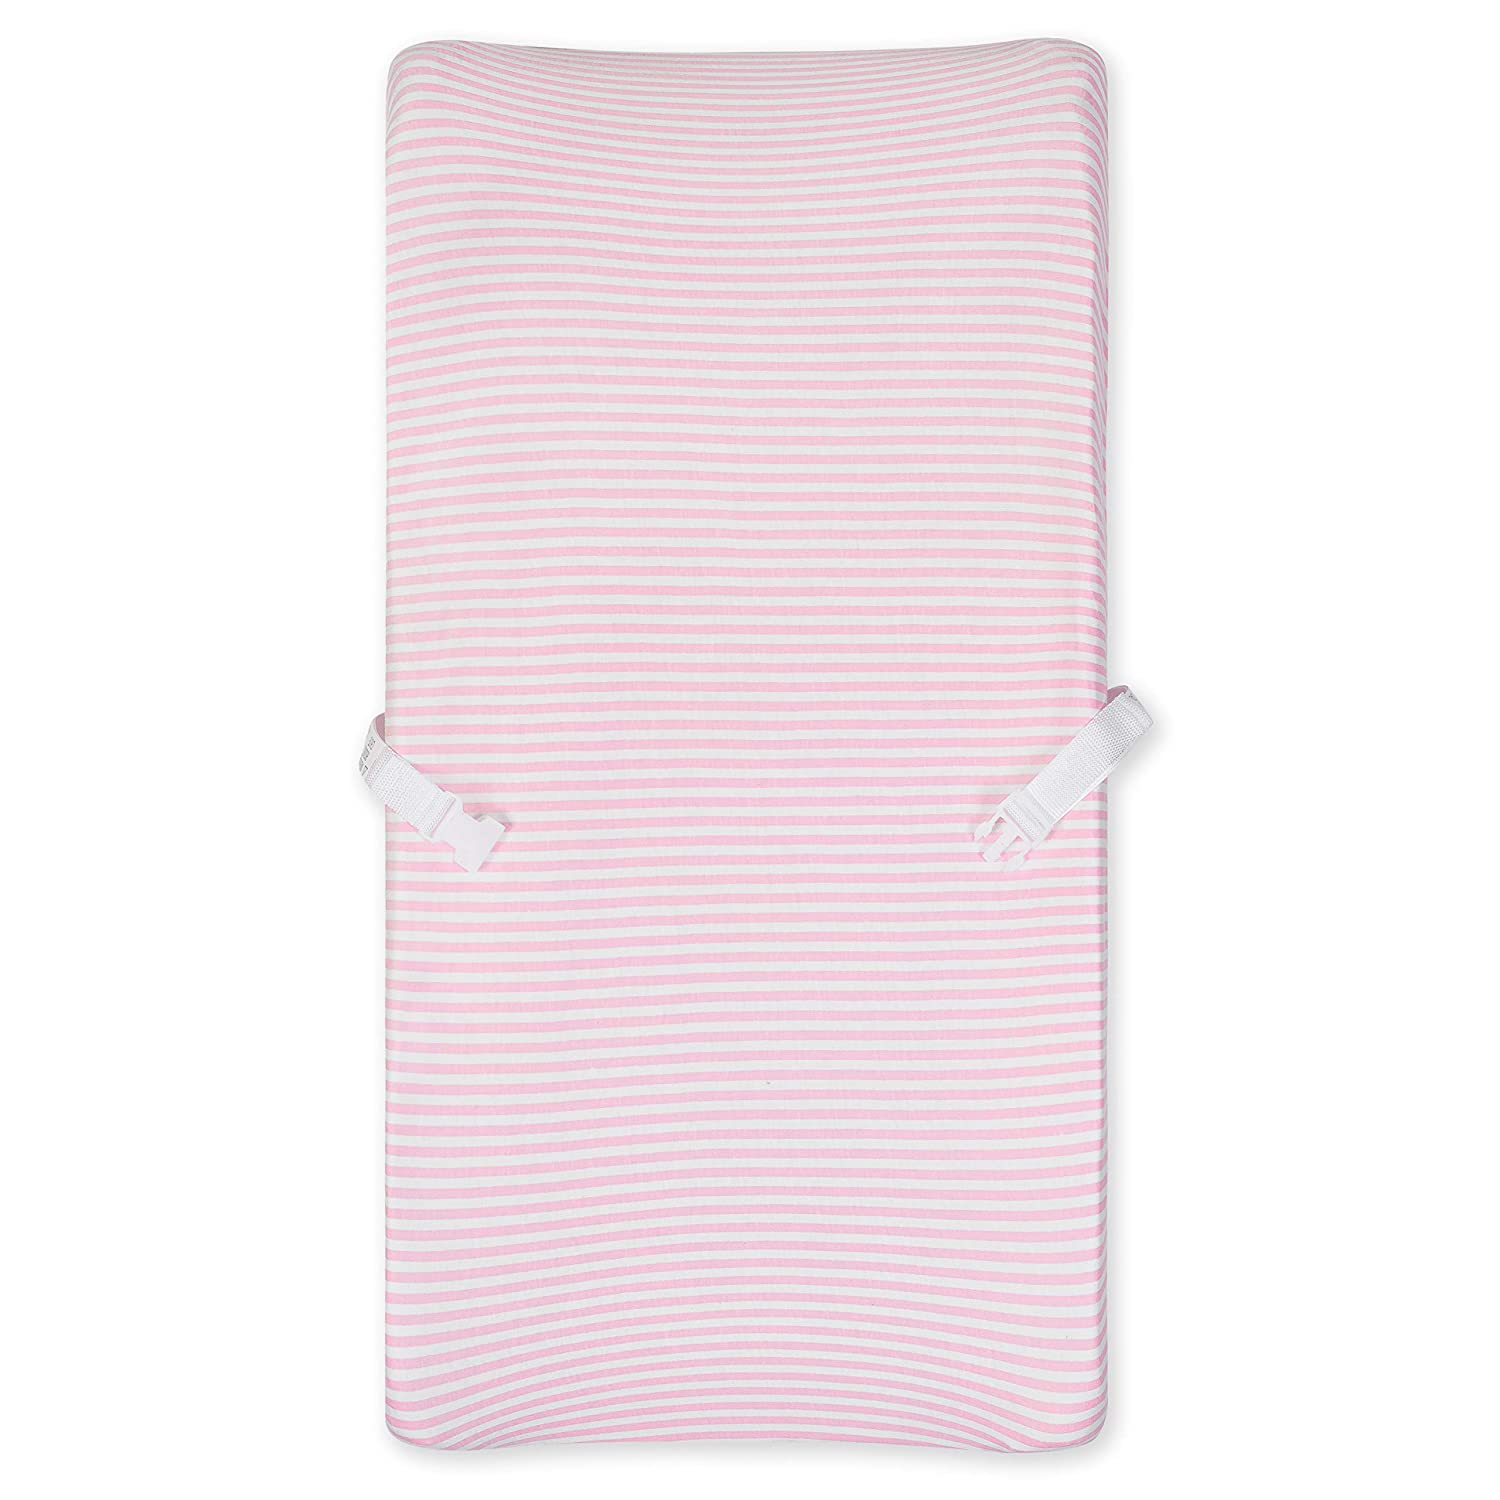 Gerber Boys and Girls Newborn Infant Baby Toddler Nursery 100% Organic Cotton Jersey Changing Pad Cover, Pink Stripe, One Size